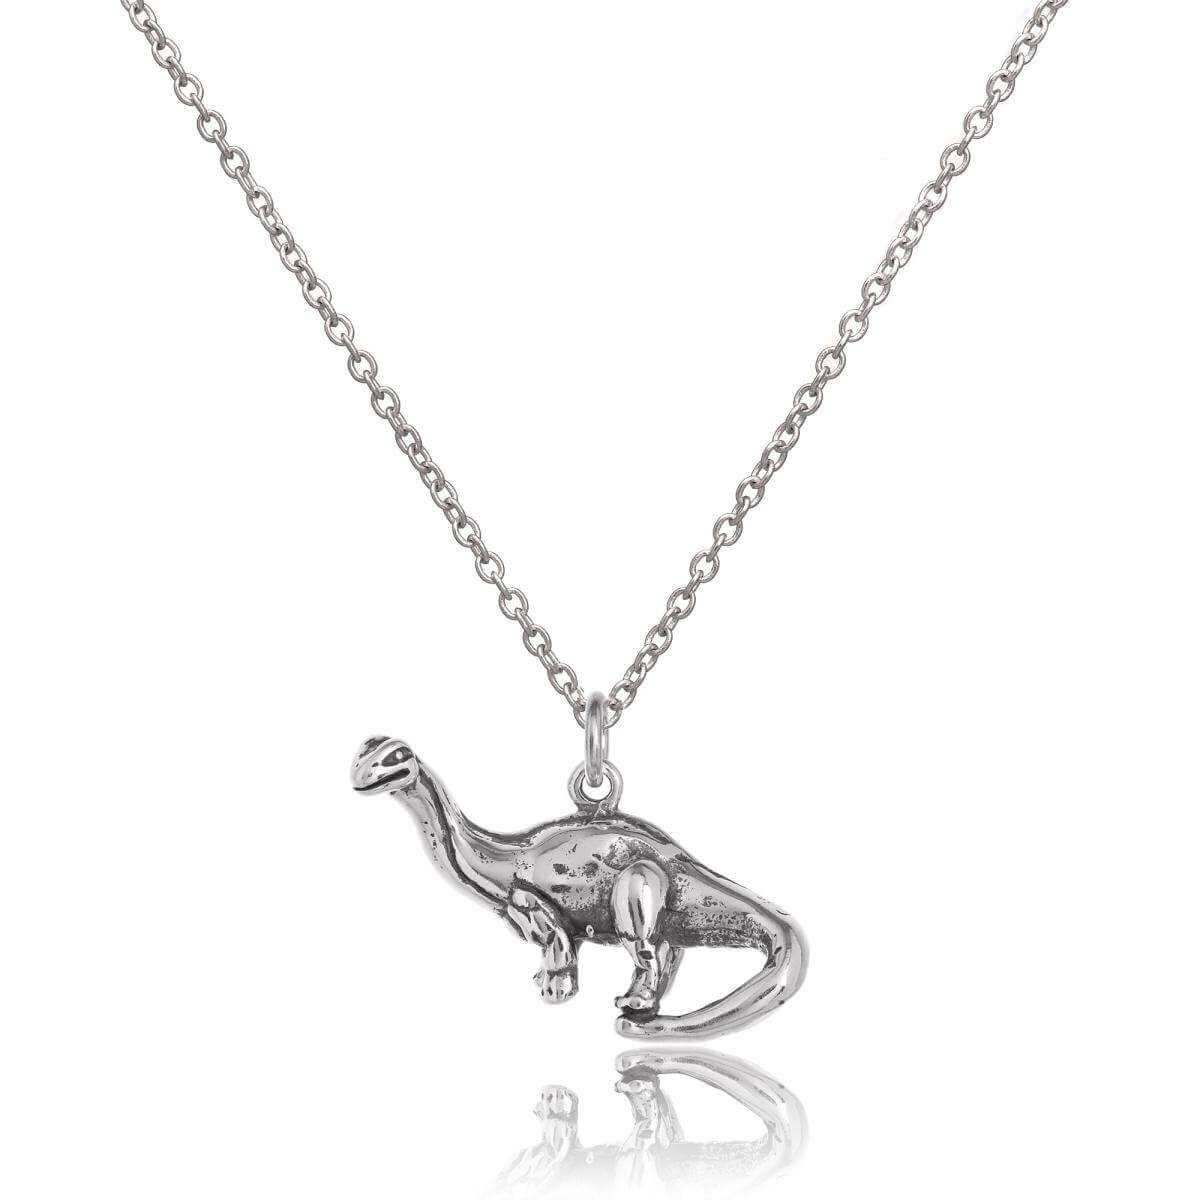 Sterling Silver Brontosaurus Dinosaur Necklace